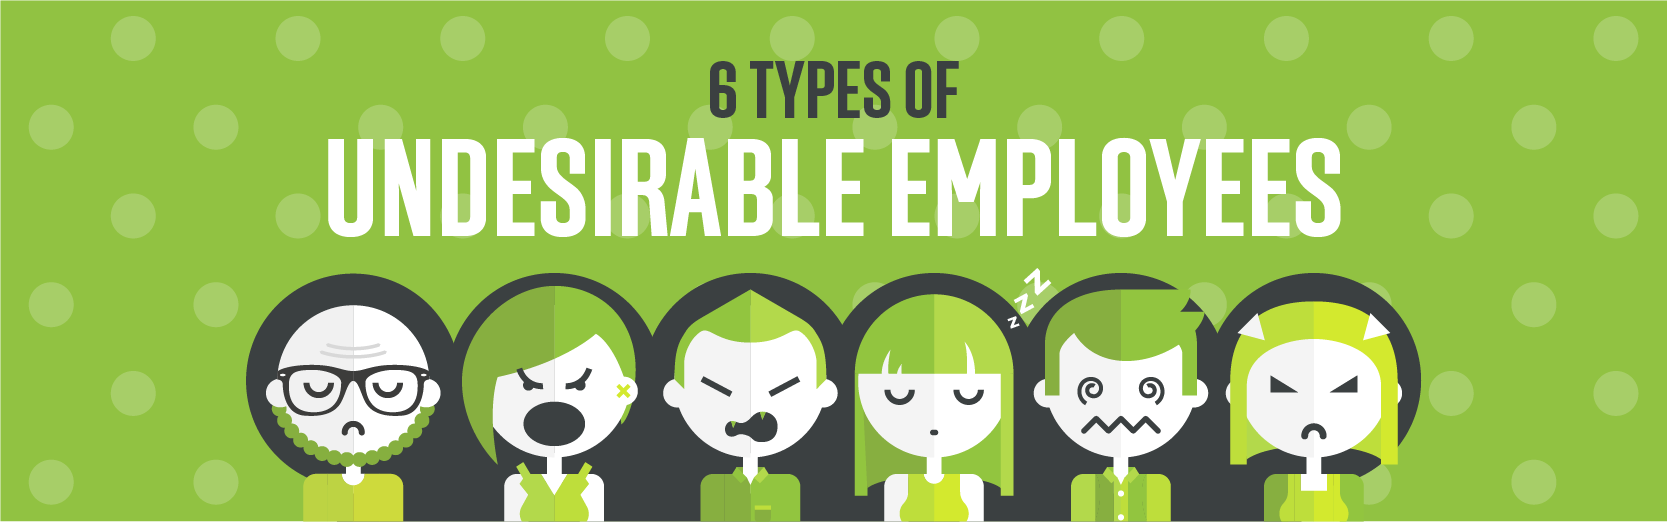 Proppian character types in the workplace